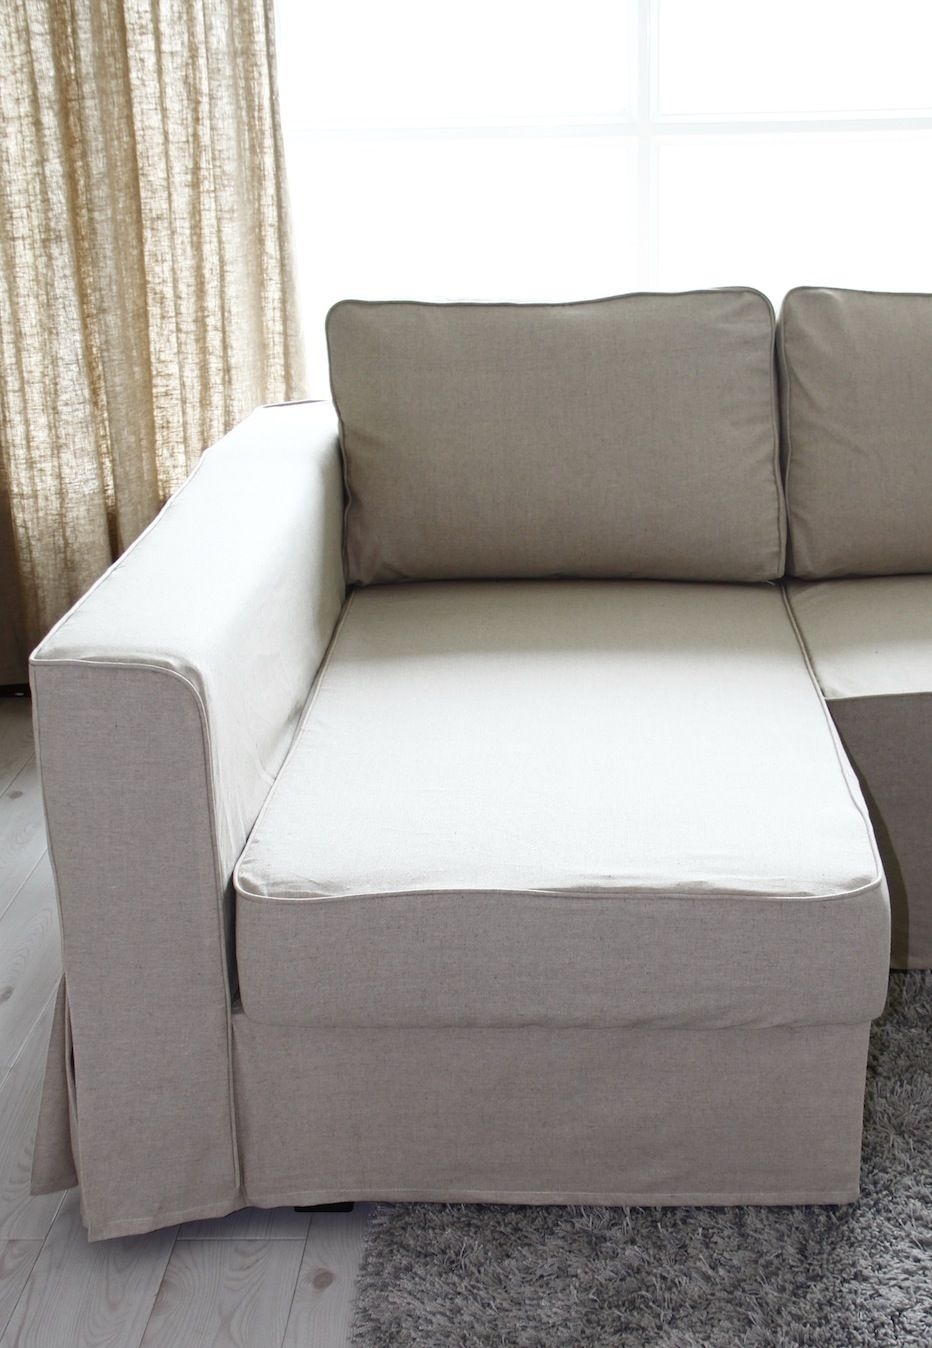 Loose Fit Linen Manstad Sofa Slipcovers Now Available | Sofa with Manstad Sofas (Image 6 of 10)